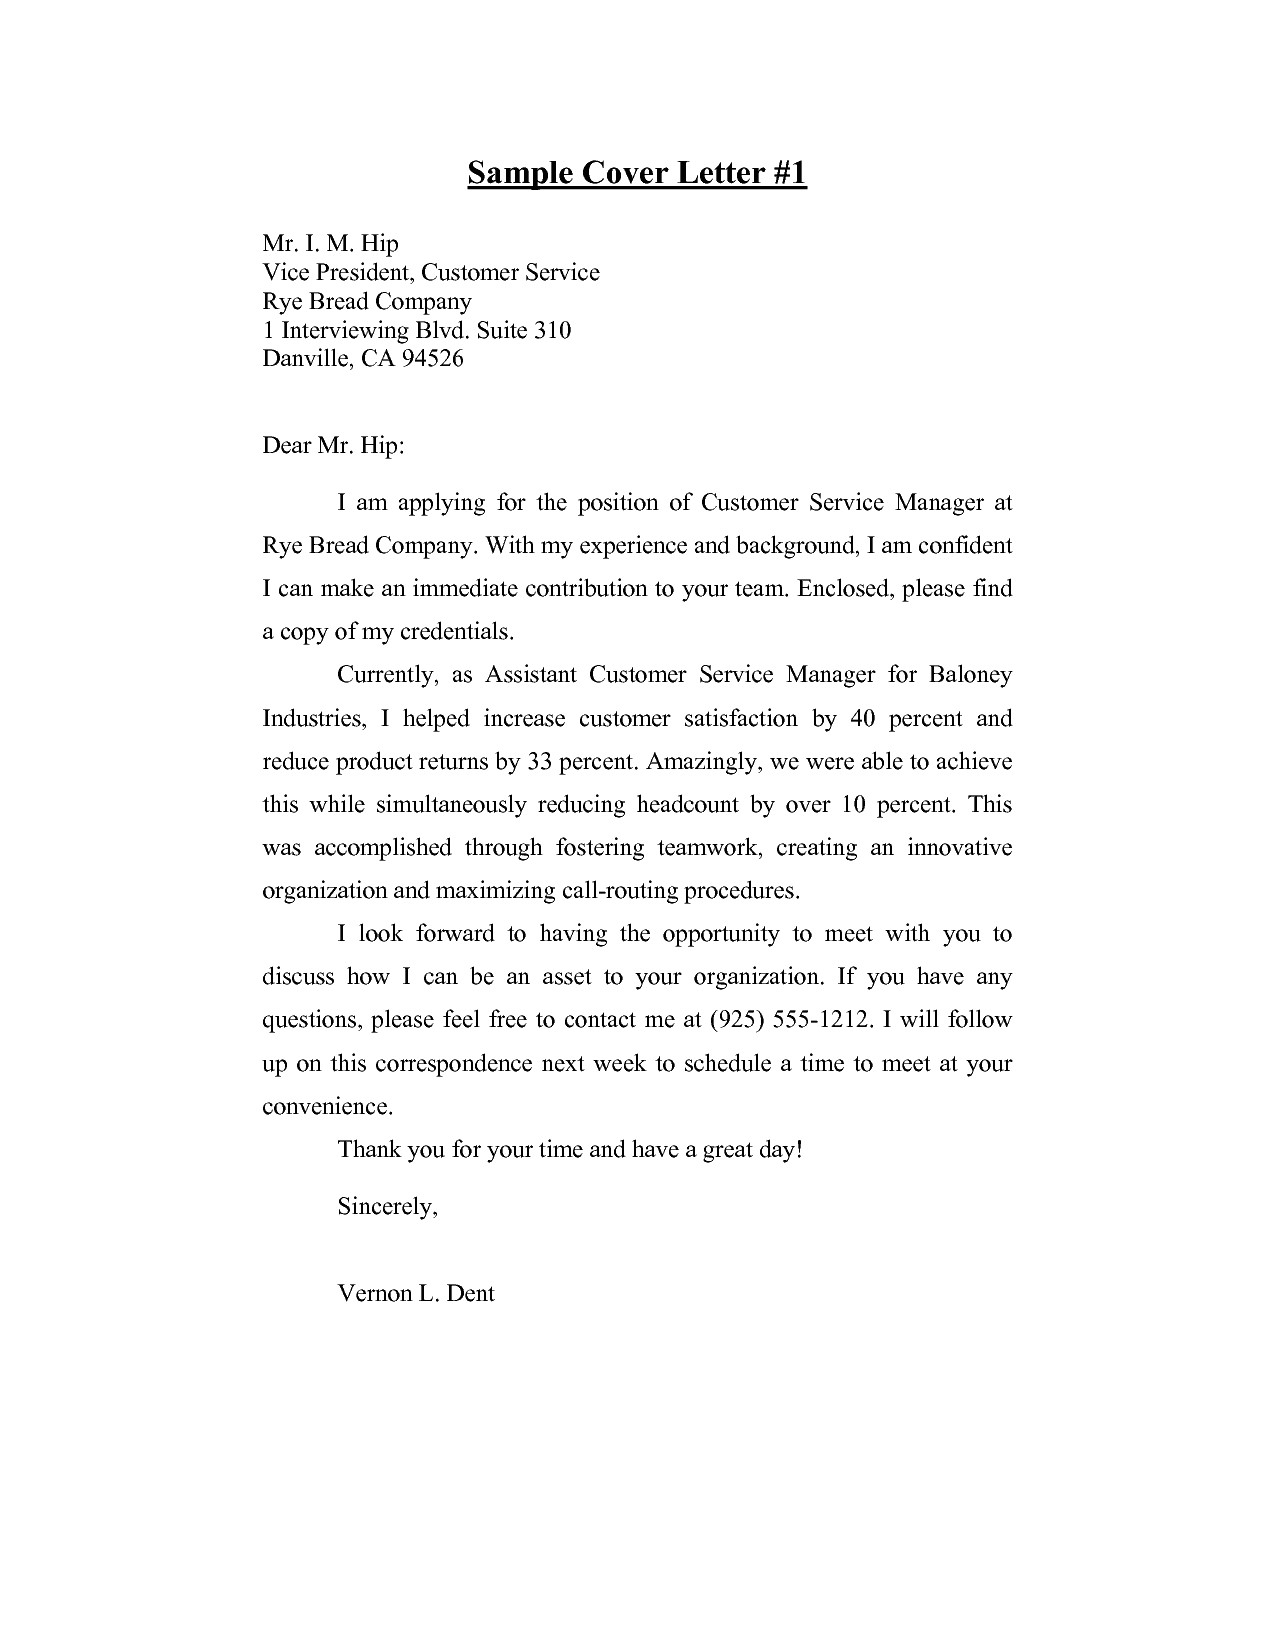 resume cover letter for customer service manager